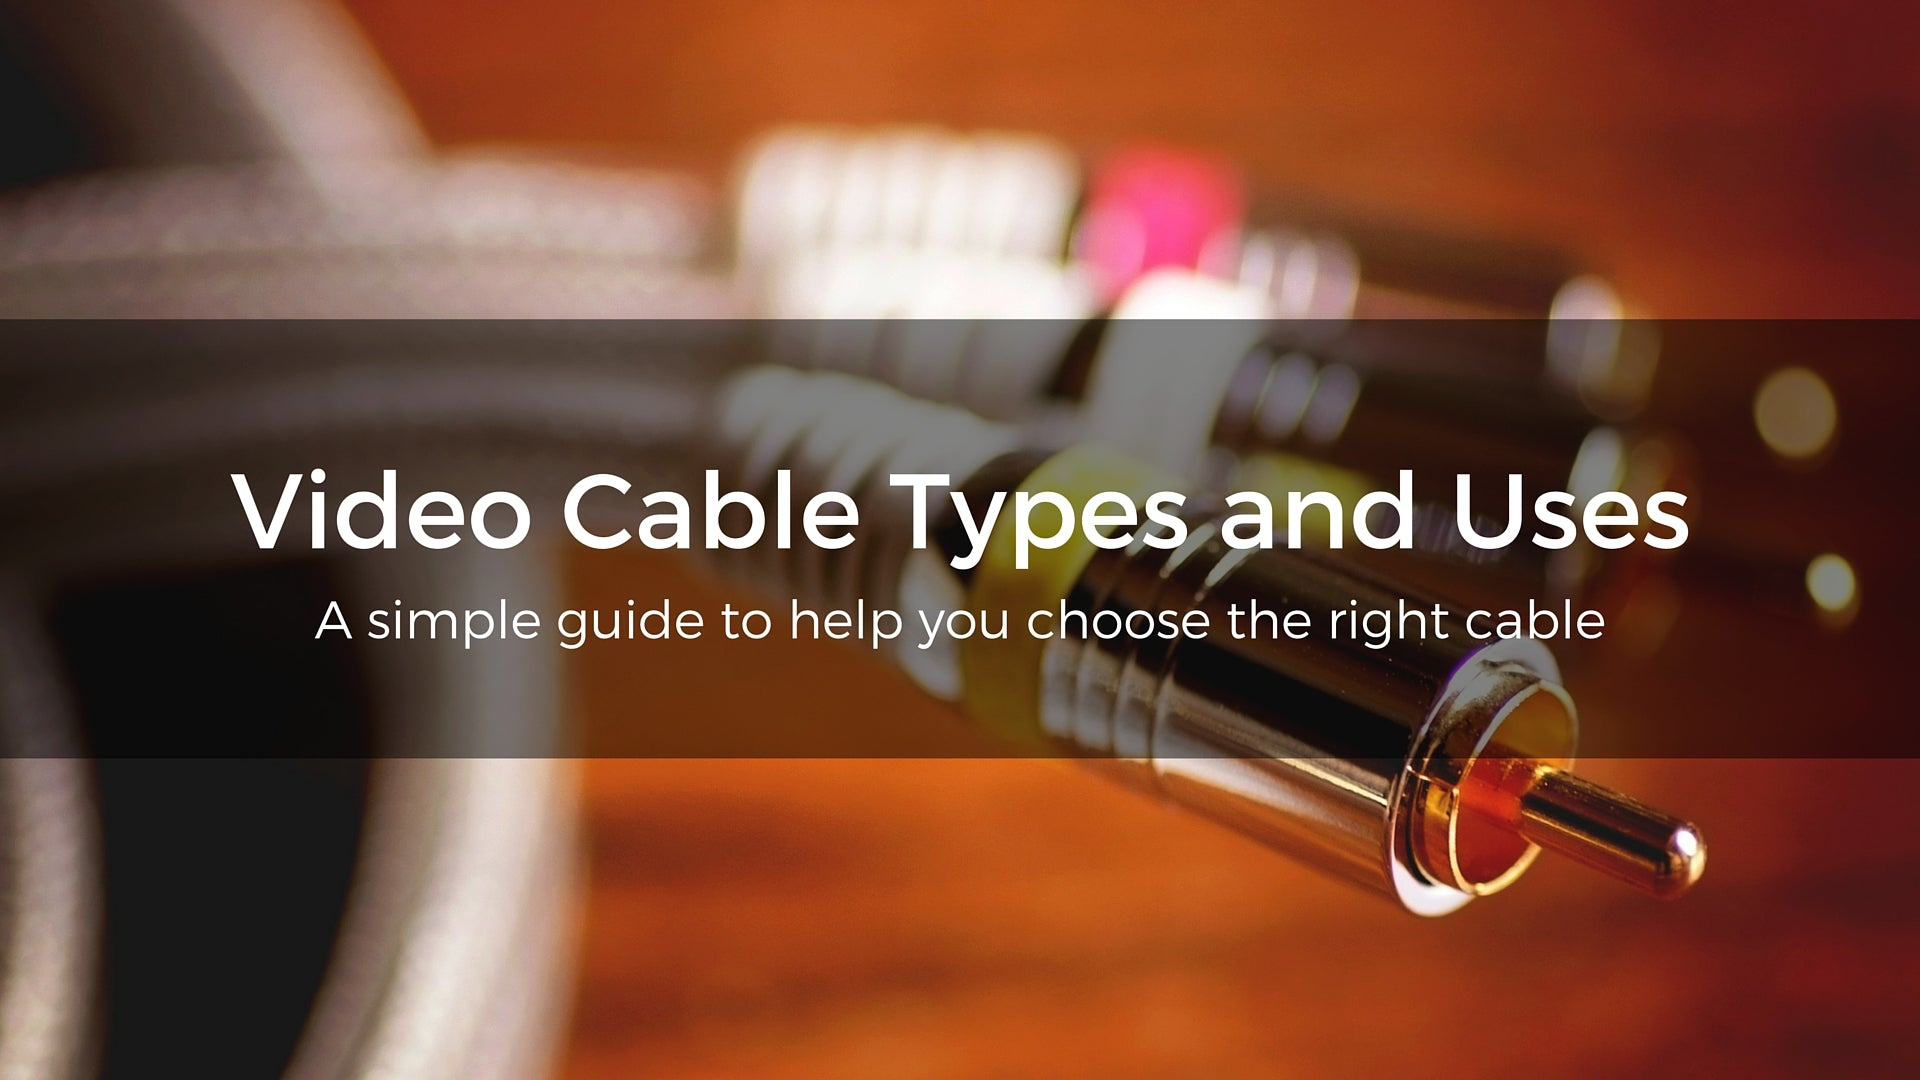 Video Cable Types and Uses